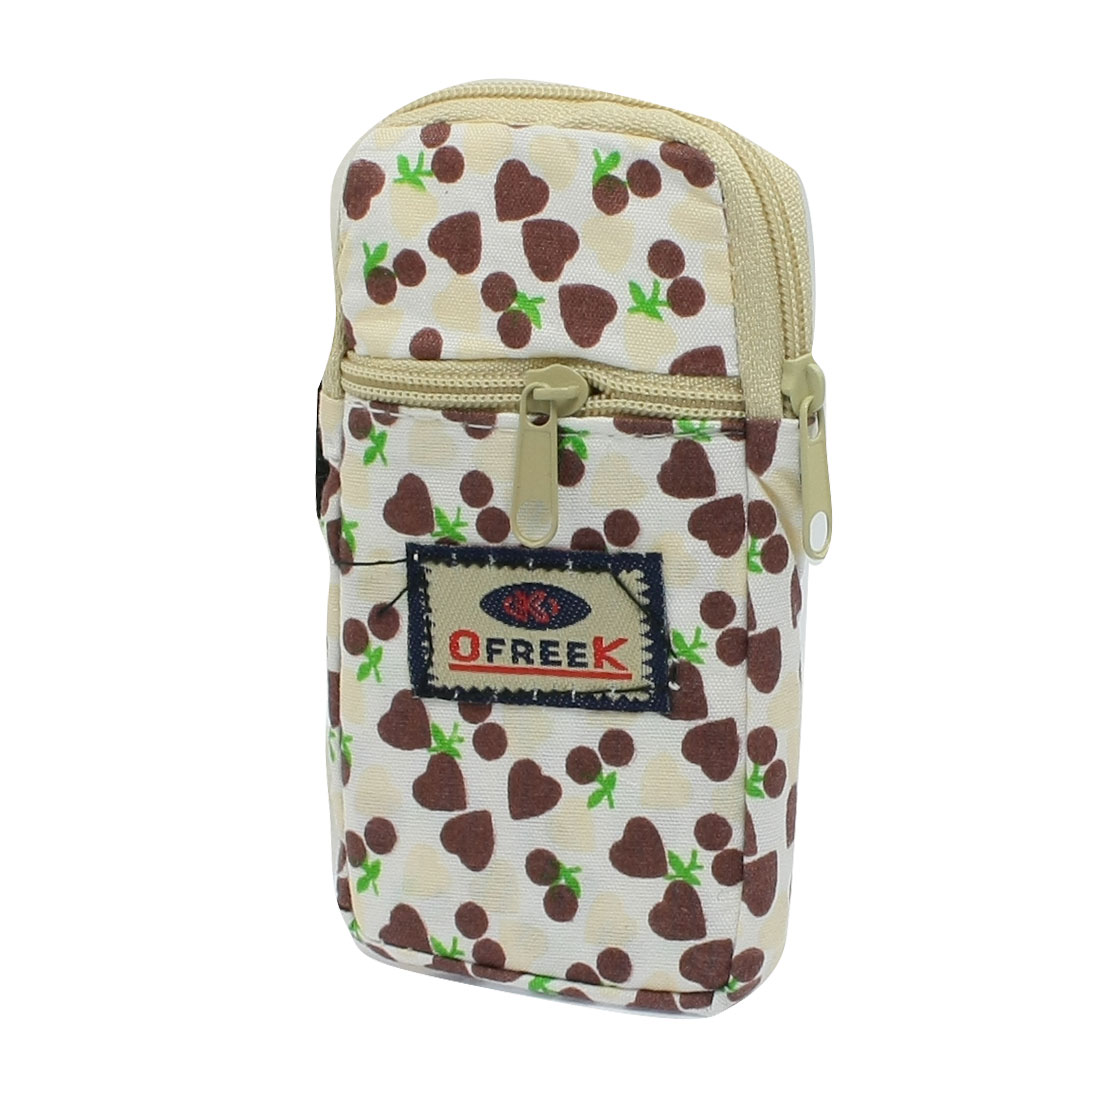 Unique Bargains Heart Pattern Zippered Cell Phone Holder Pouch Beige Brown Wristbag